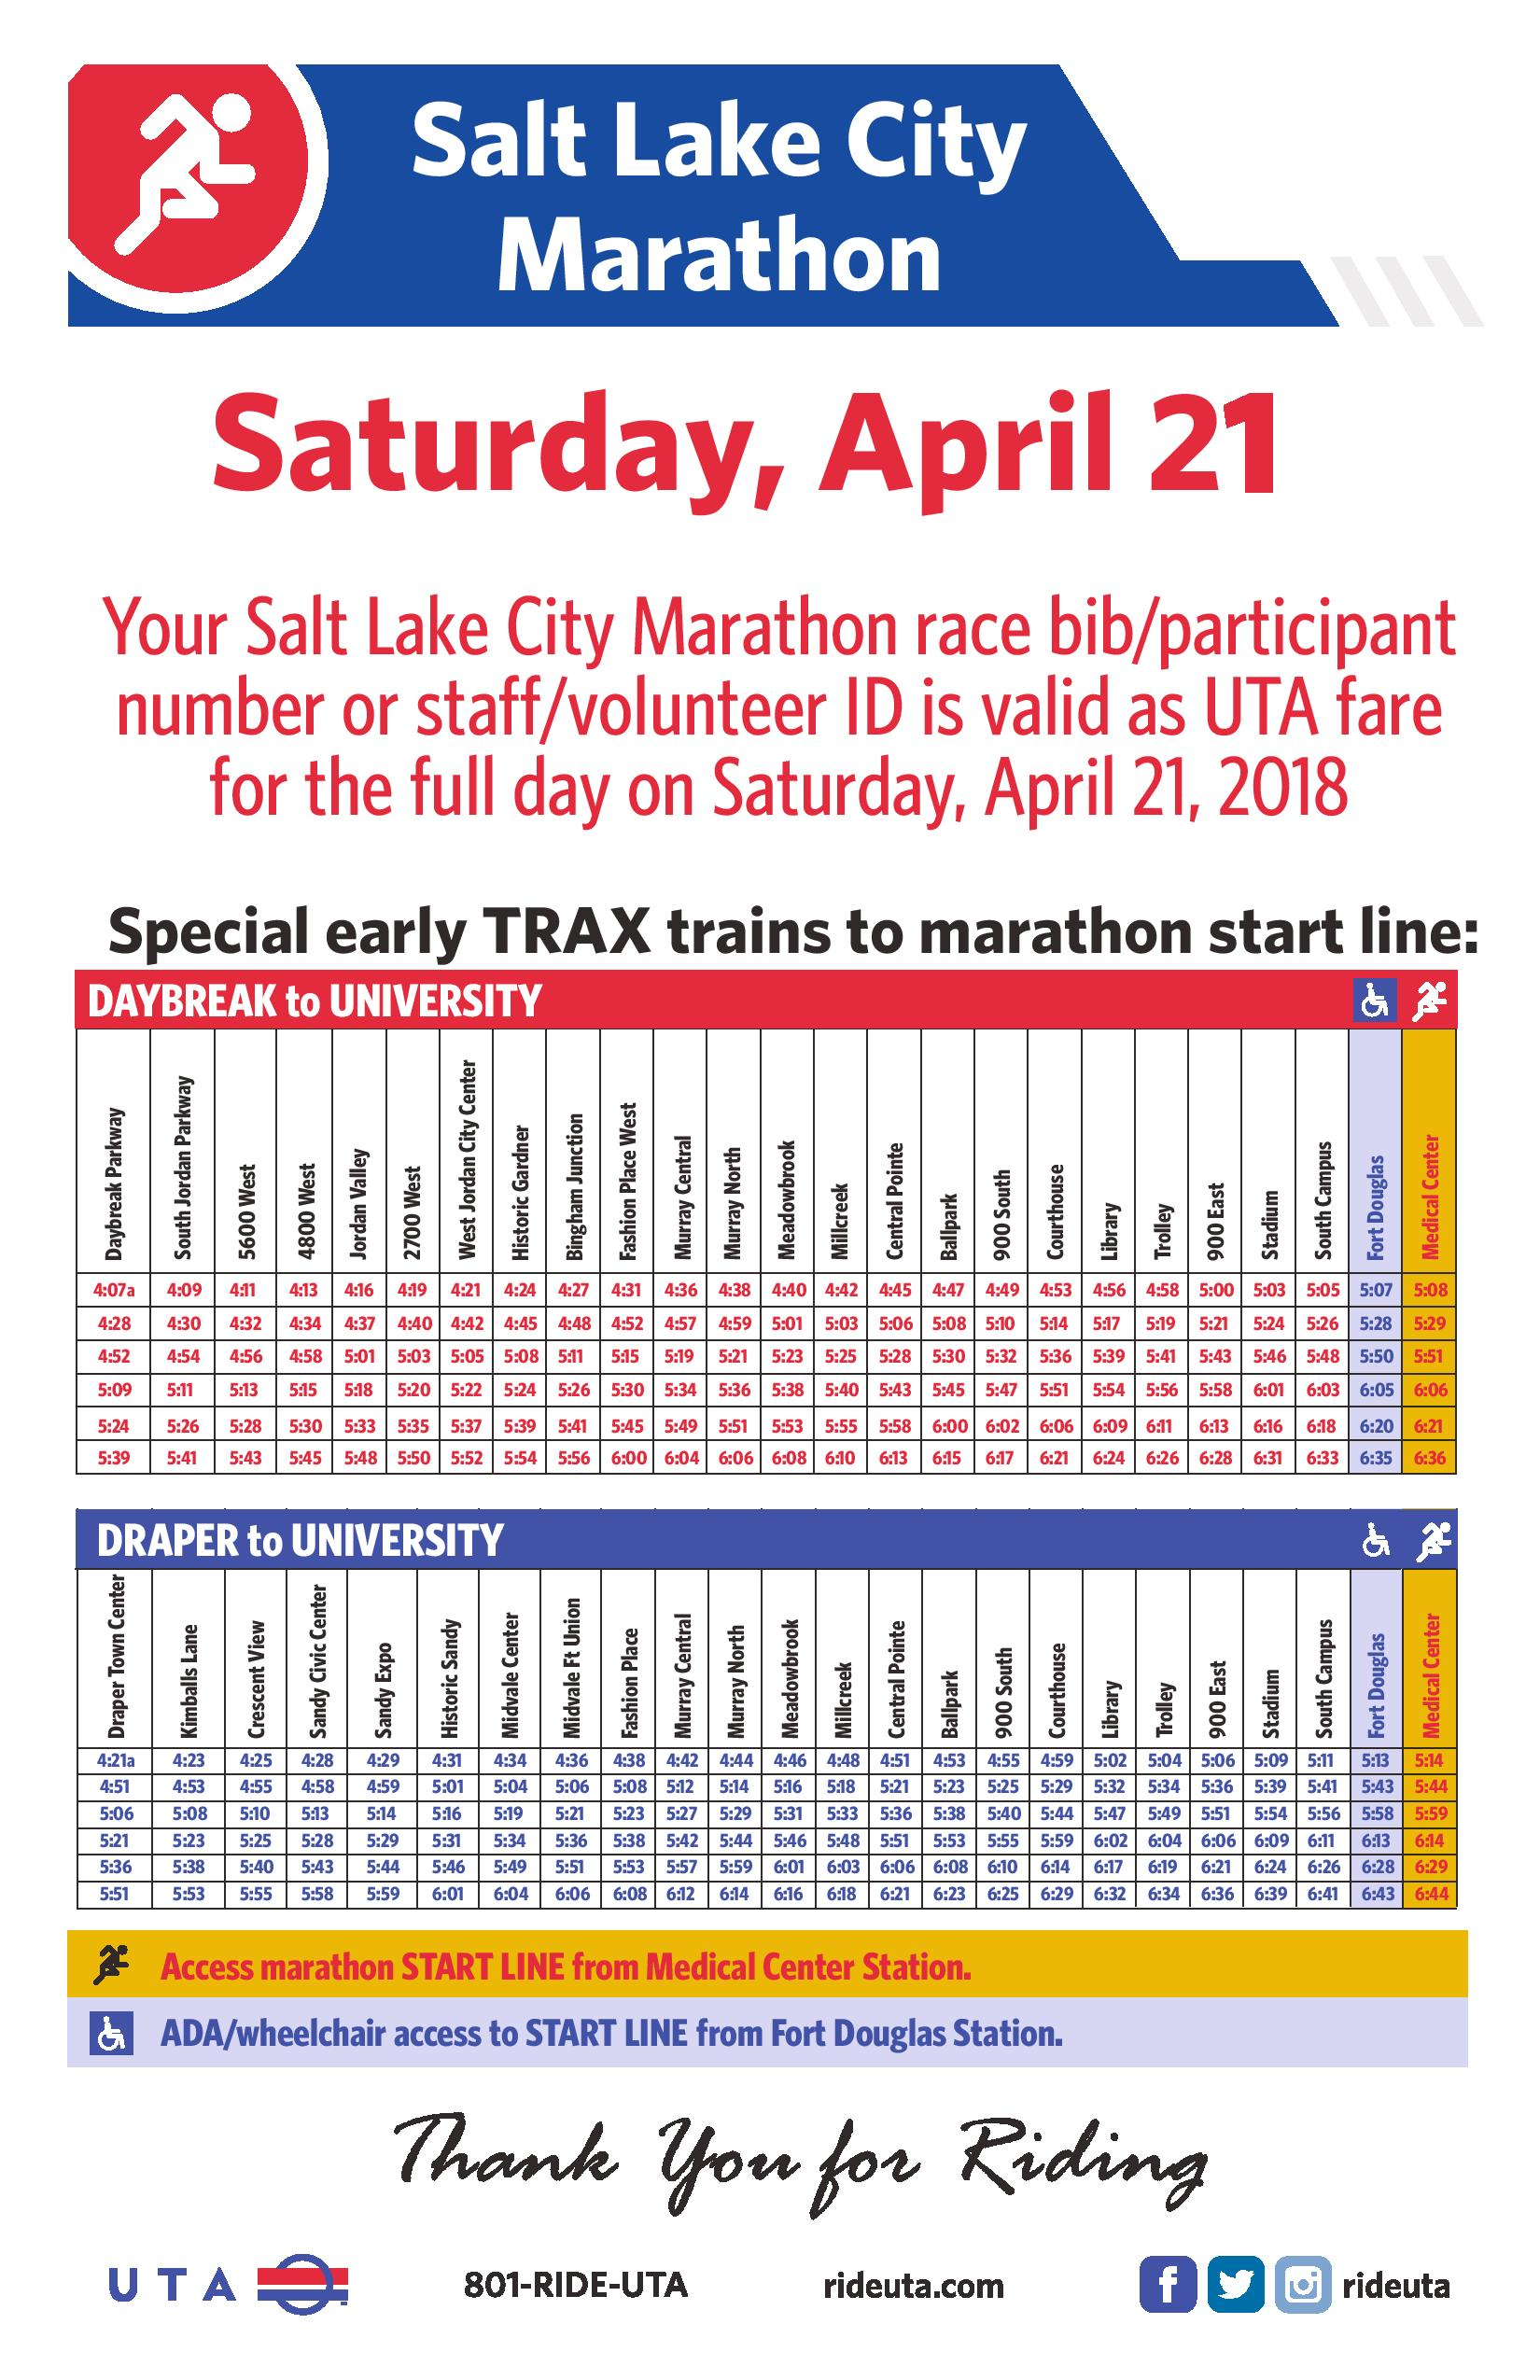 uta offers early service to slc marathon